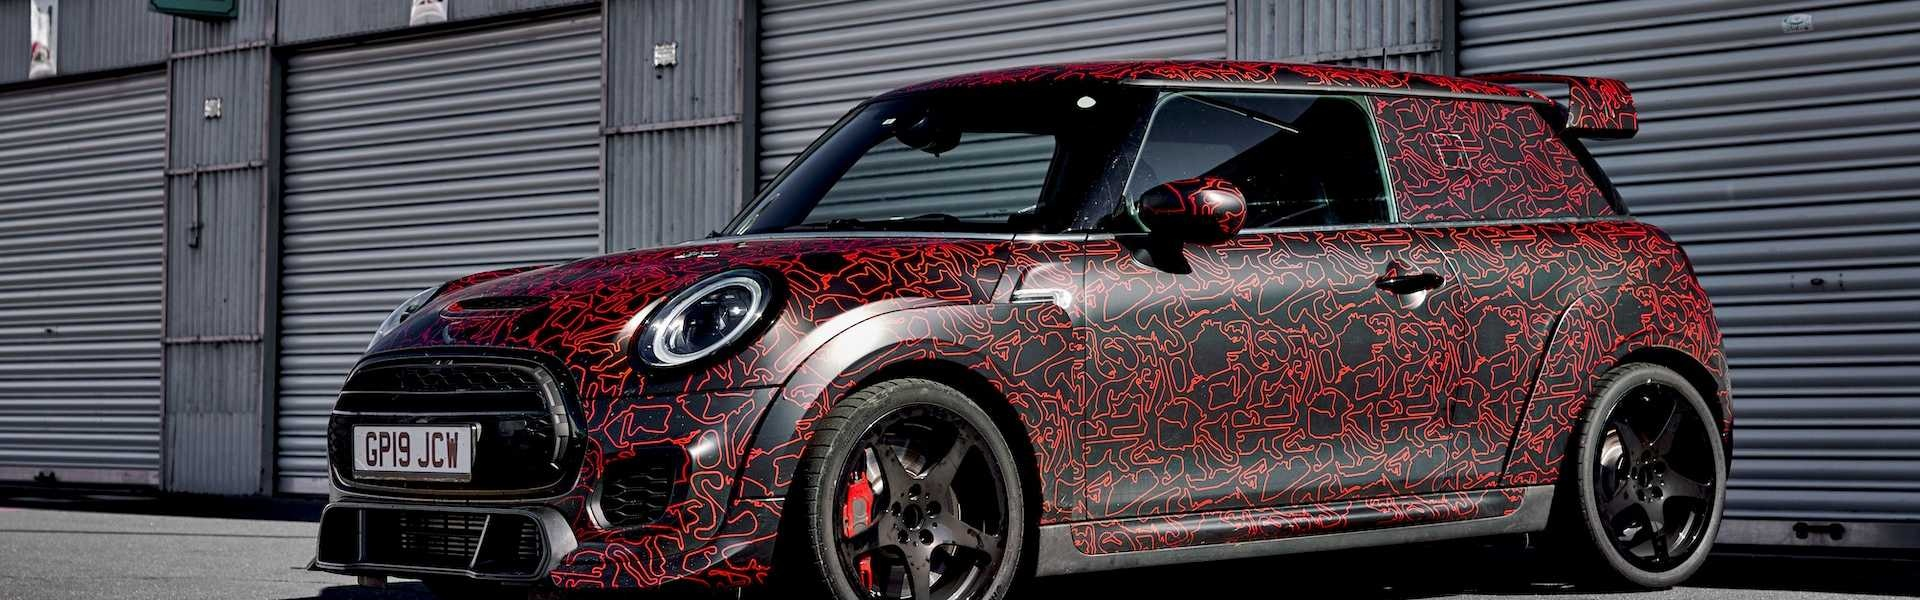 2020-mini-john-cooper-works-gp-prototype (8).jpg